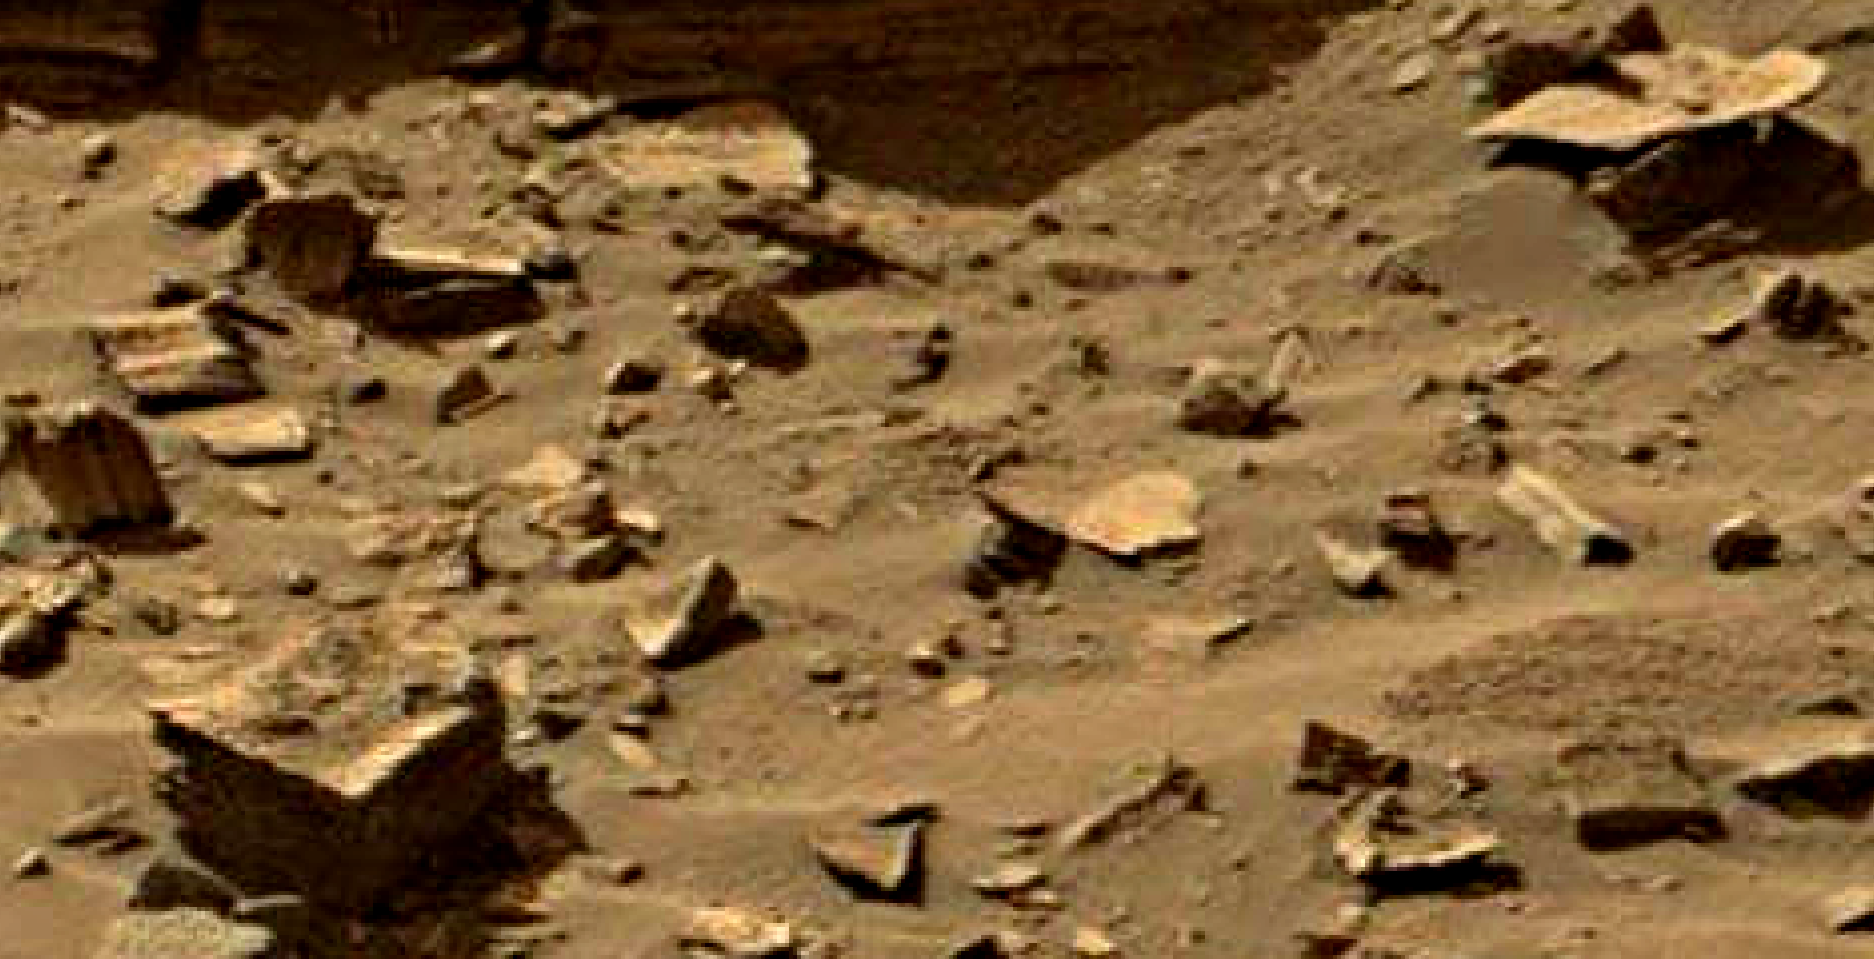 mars sol 1429 anomaly artifacts 3 was life on mars